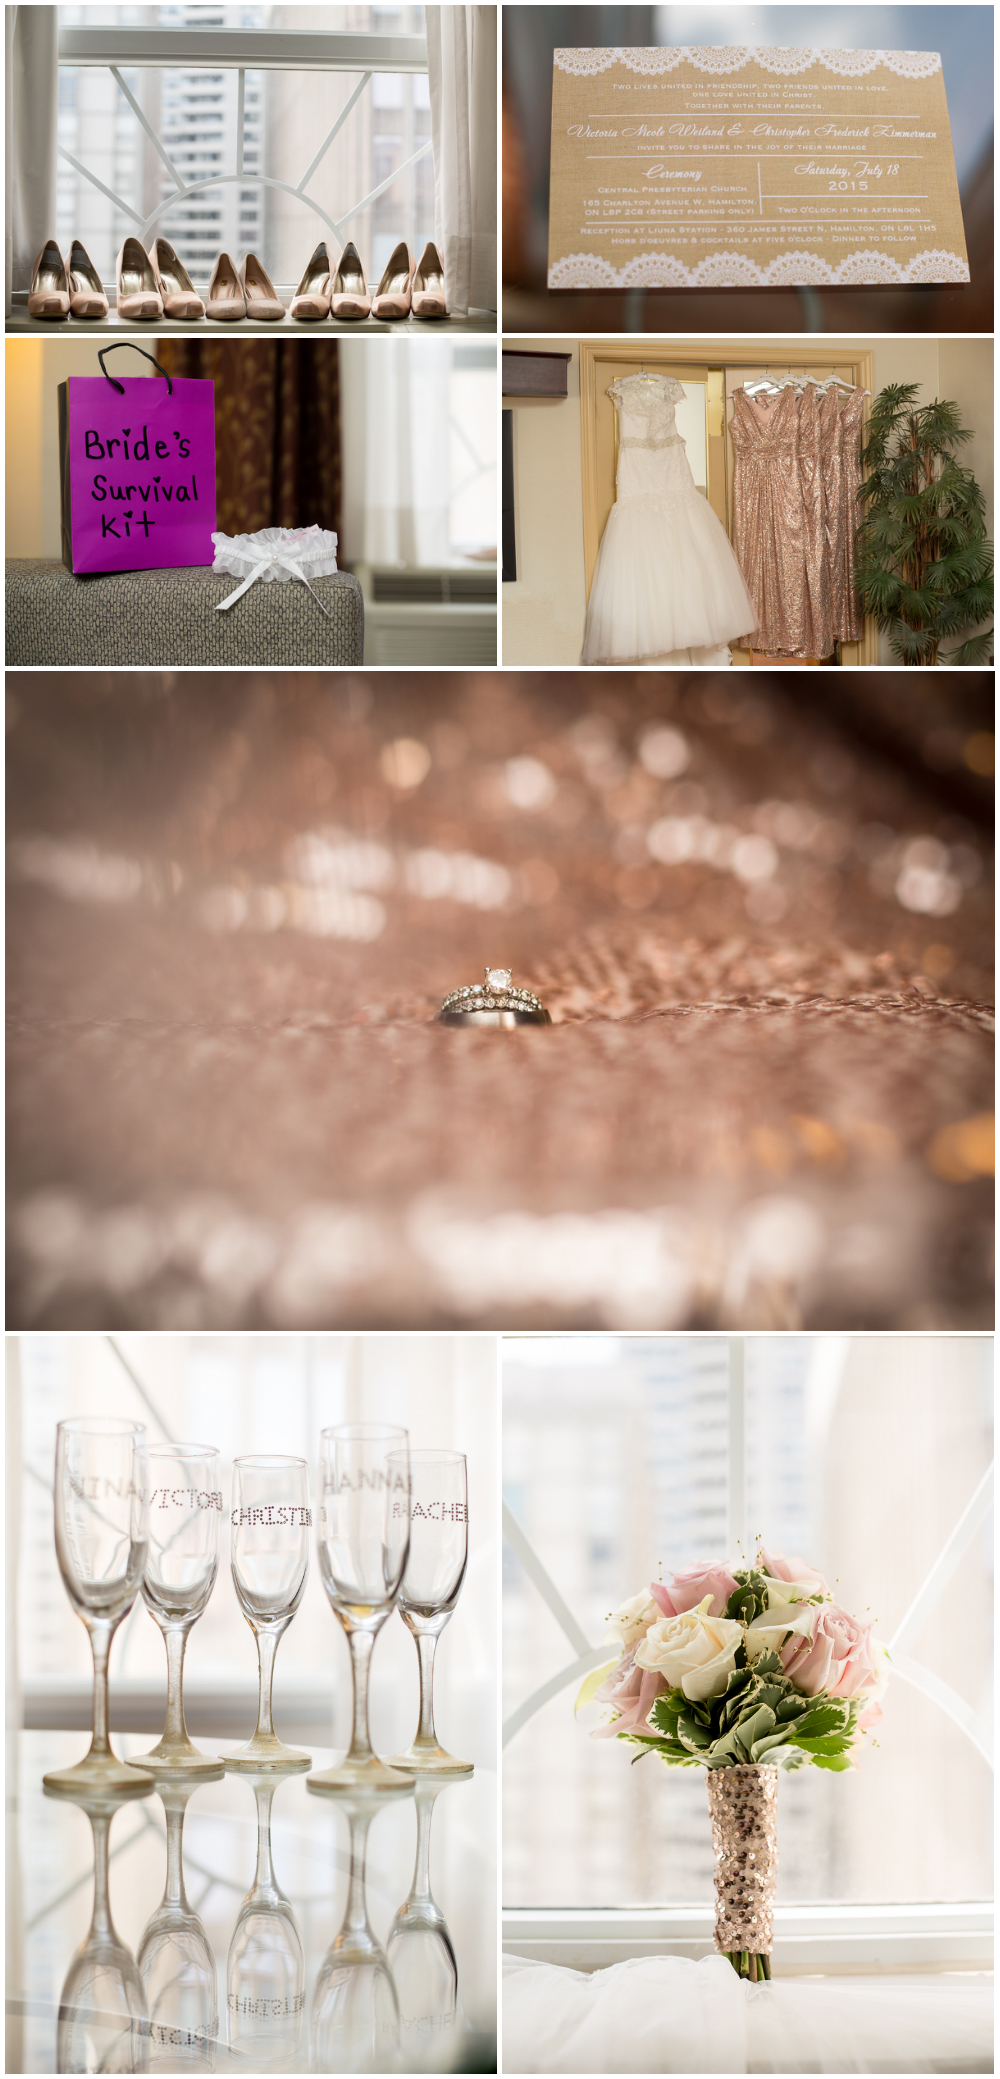 Liuna_Station_Hamilton_Wedding_Photo_JJMedia-1